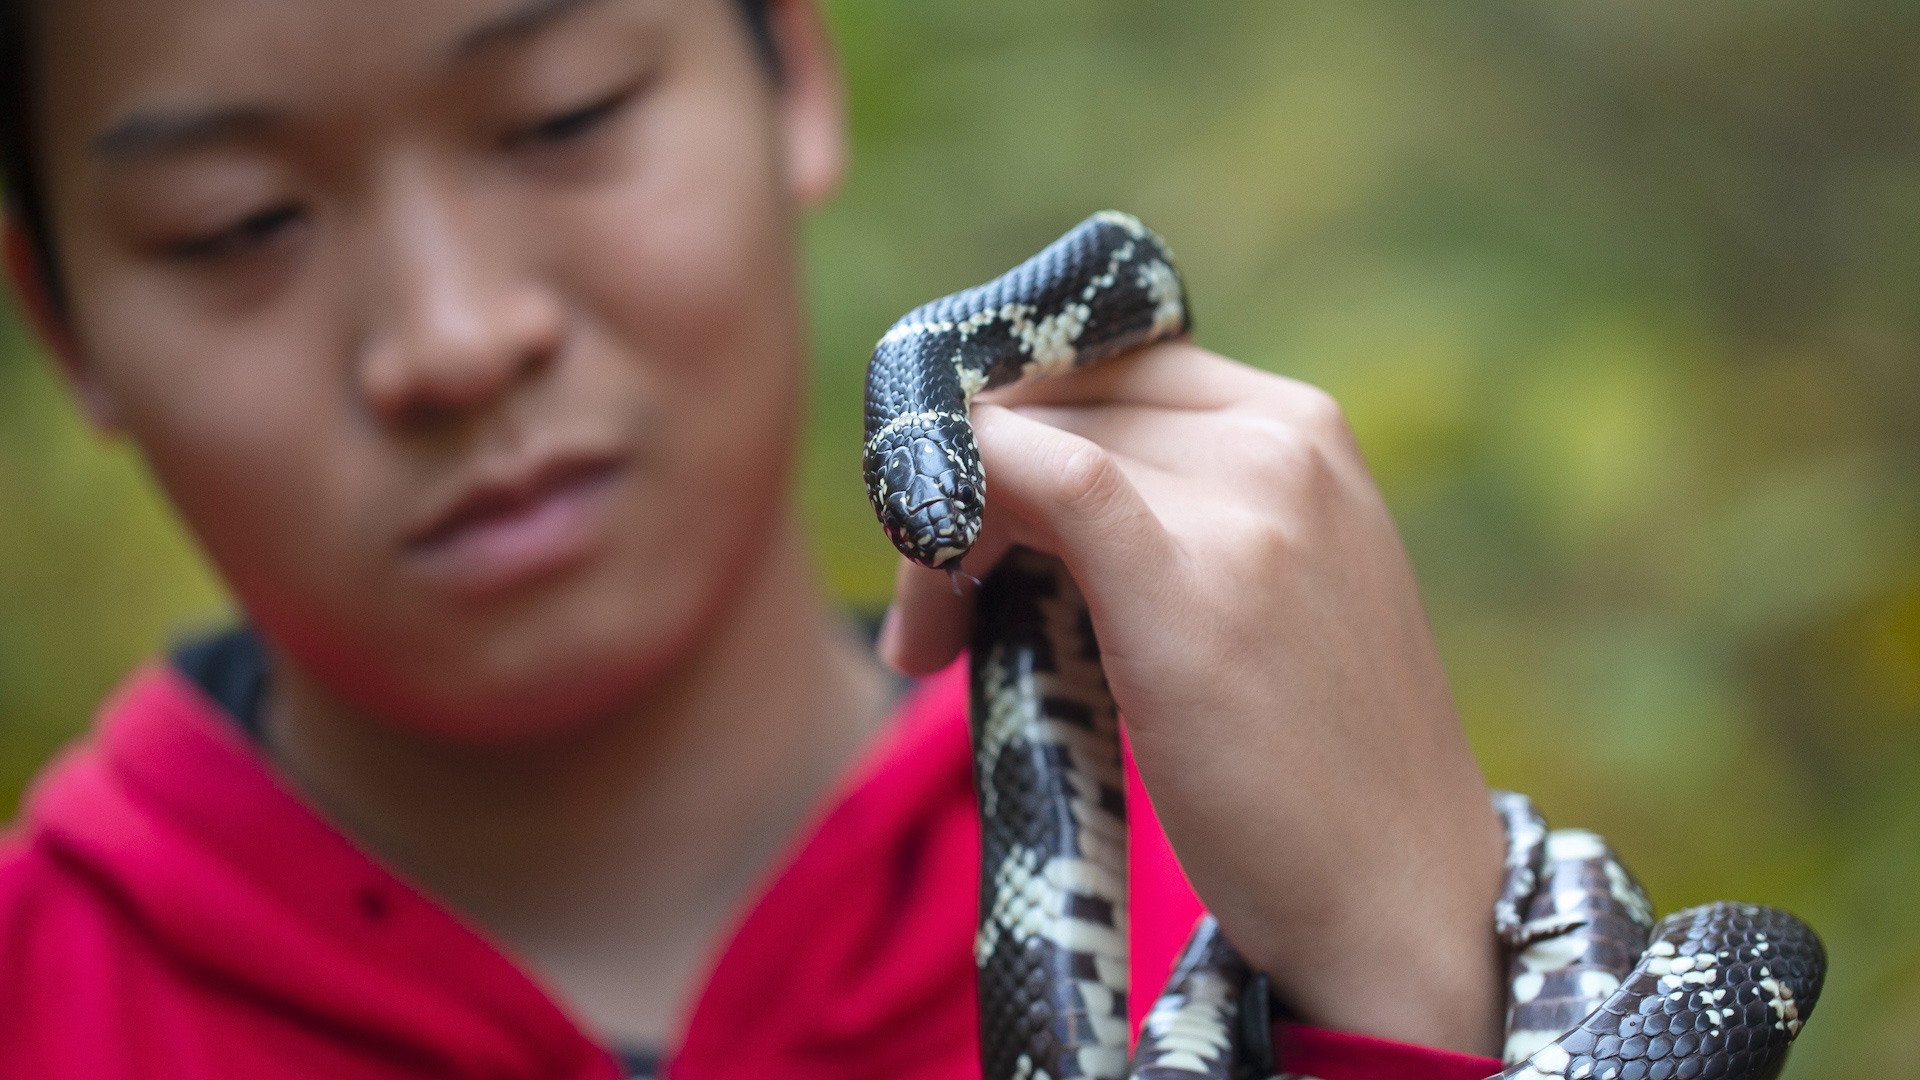 Justin Lee, Herpetologist, holding a small snake